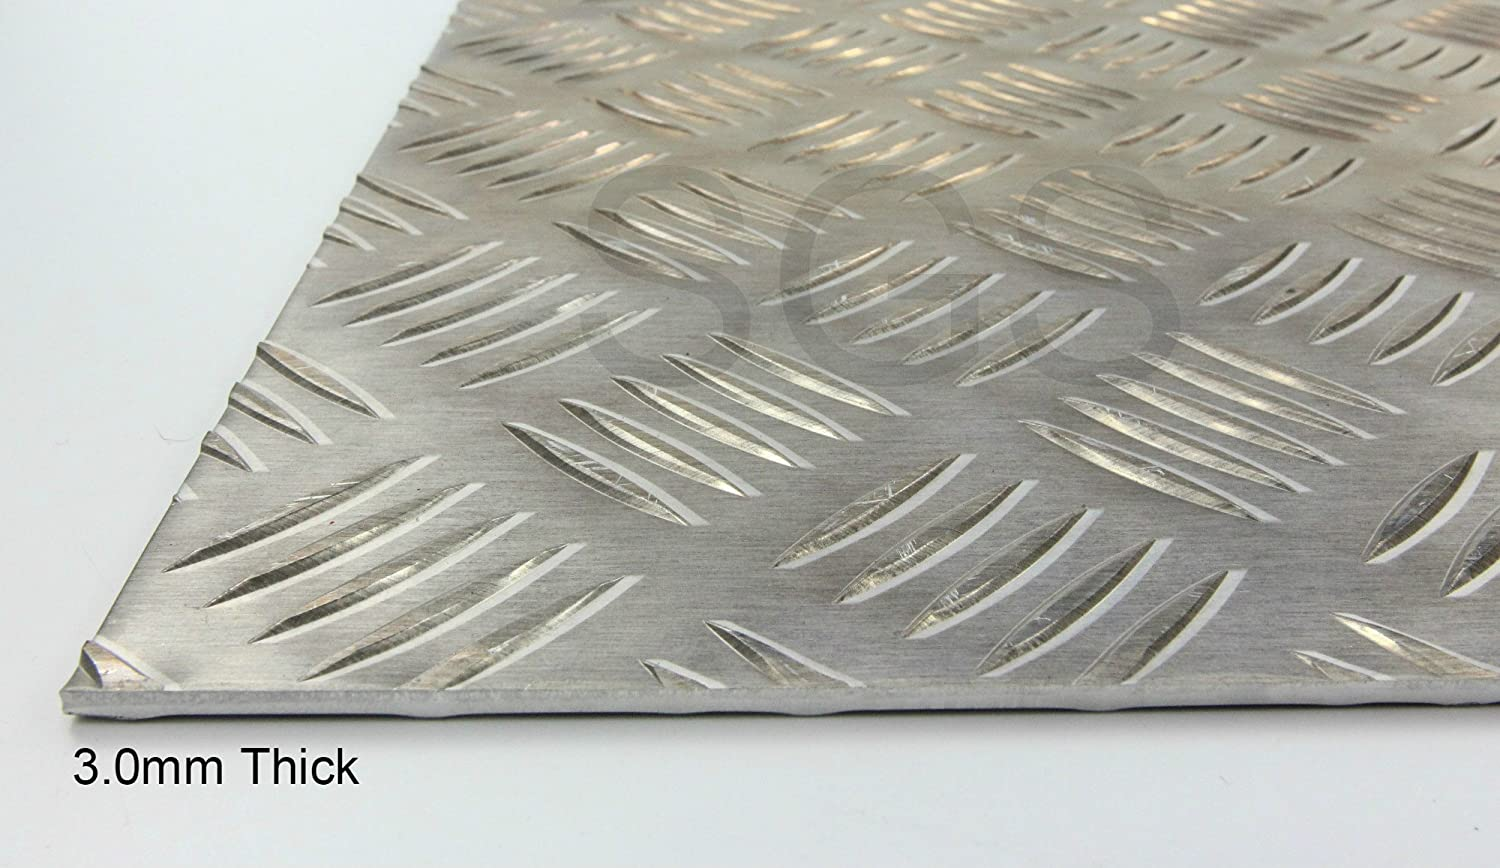 3.0mm Thick Aluminium Chequer Plate - 23 sizes to choose from (150mm x 150mm) SGS